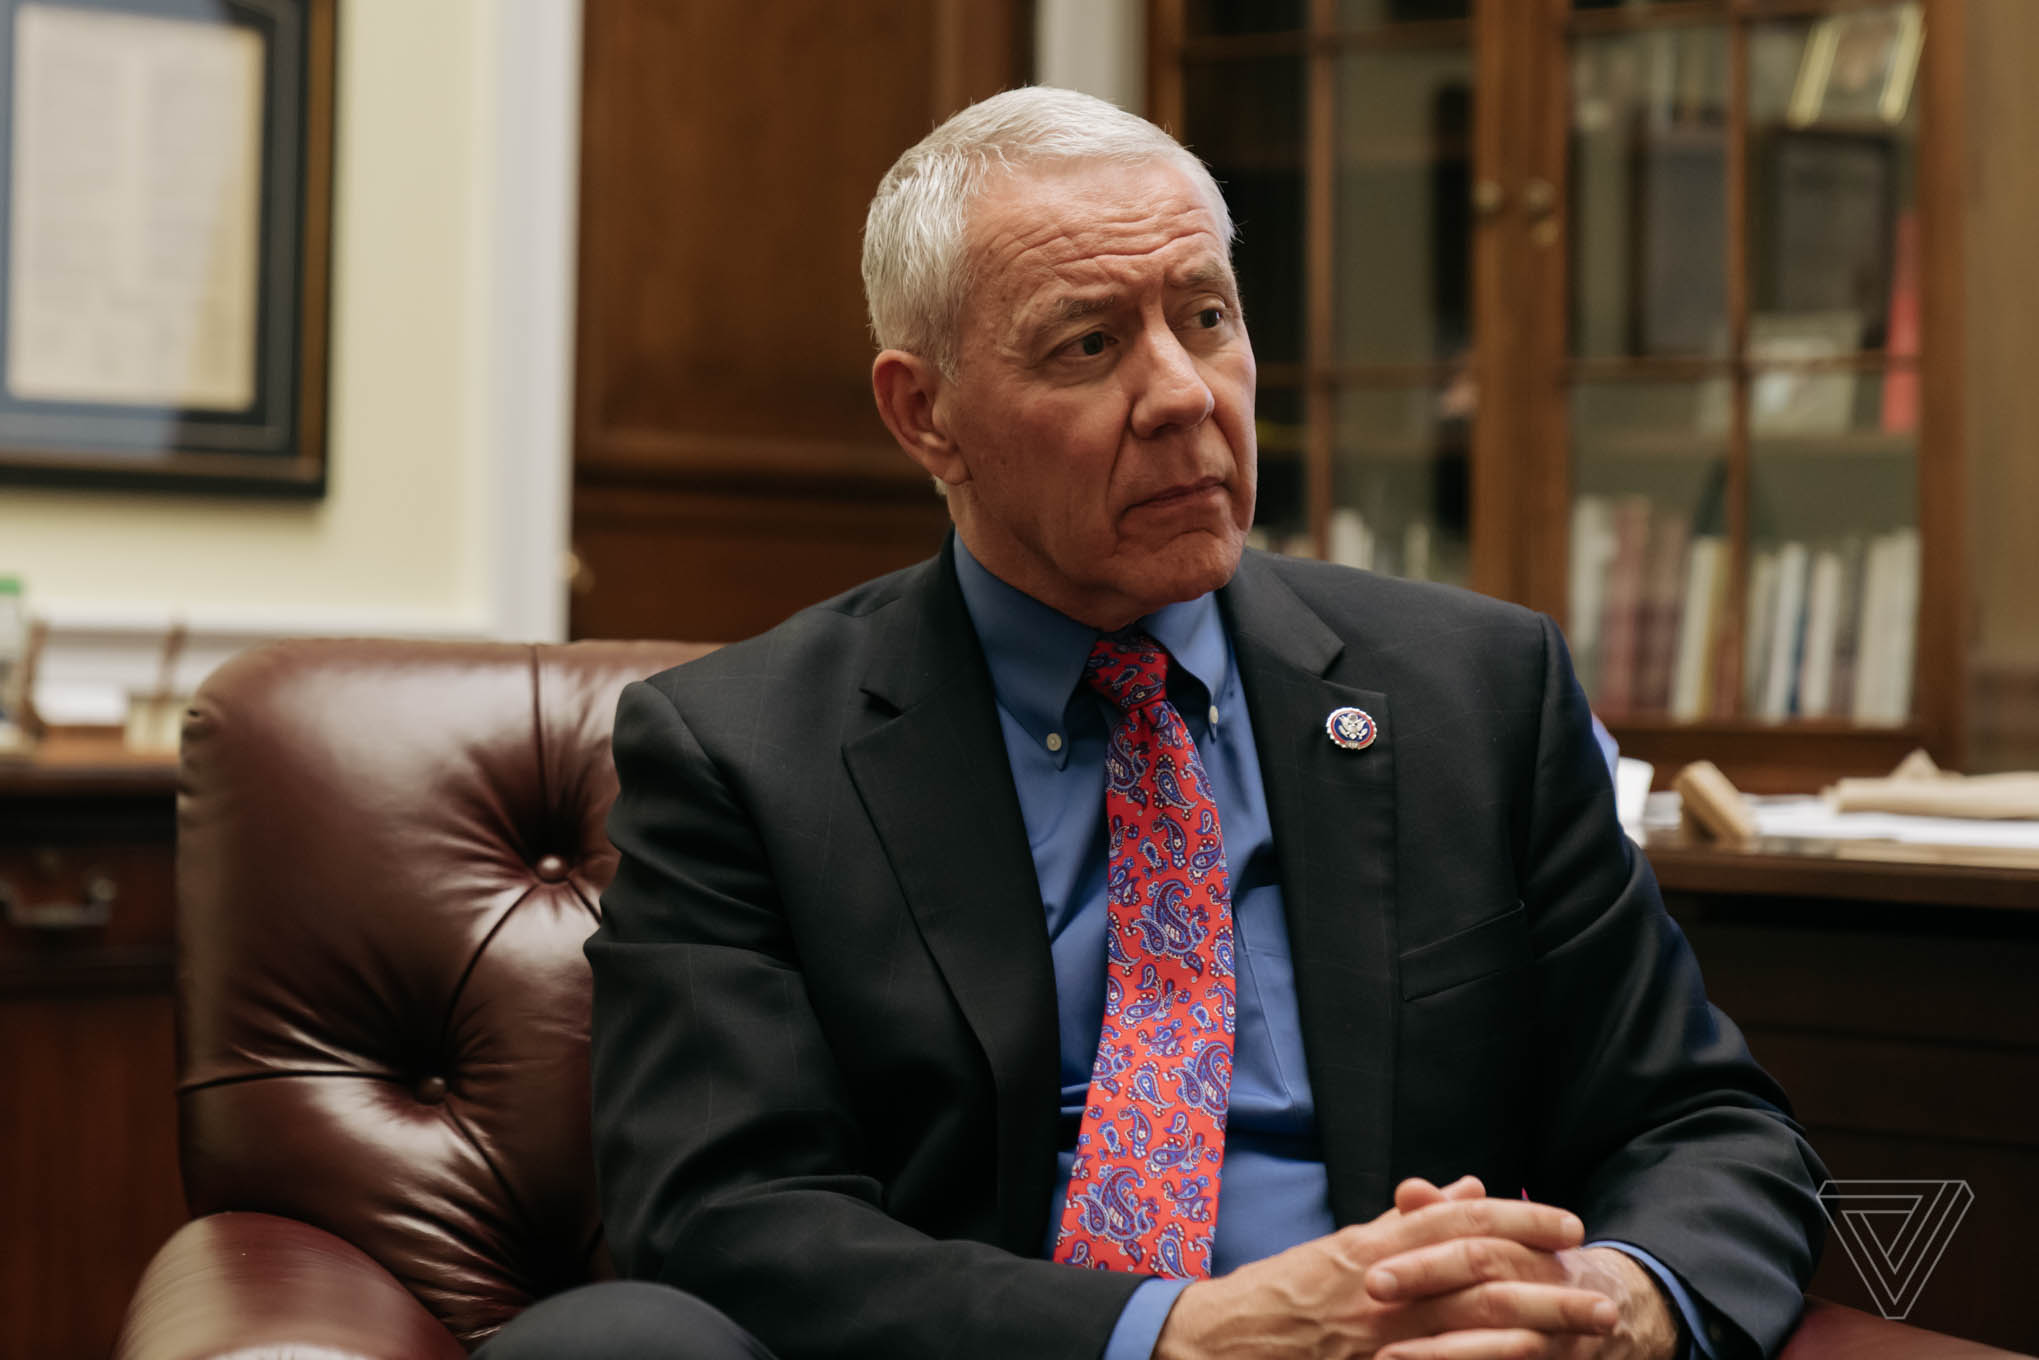 Congressman Ken Buck, R-Colo., at his office in the Rayburn Office Building in Washington, D.C., on June 30, 2021.